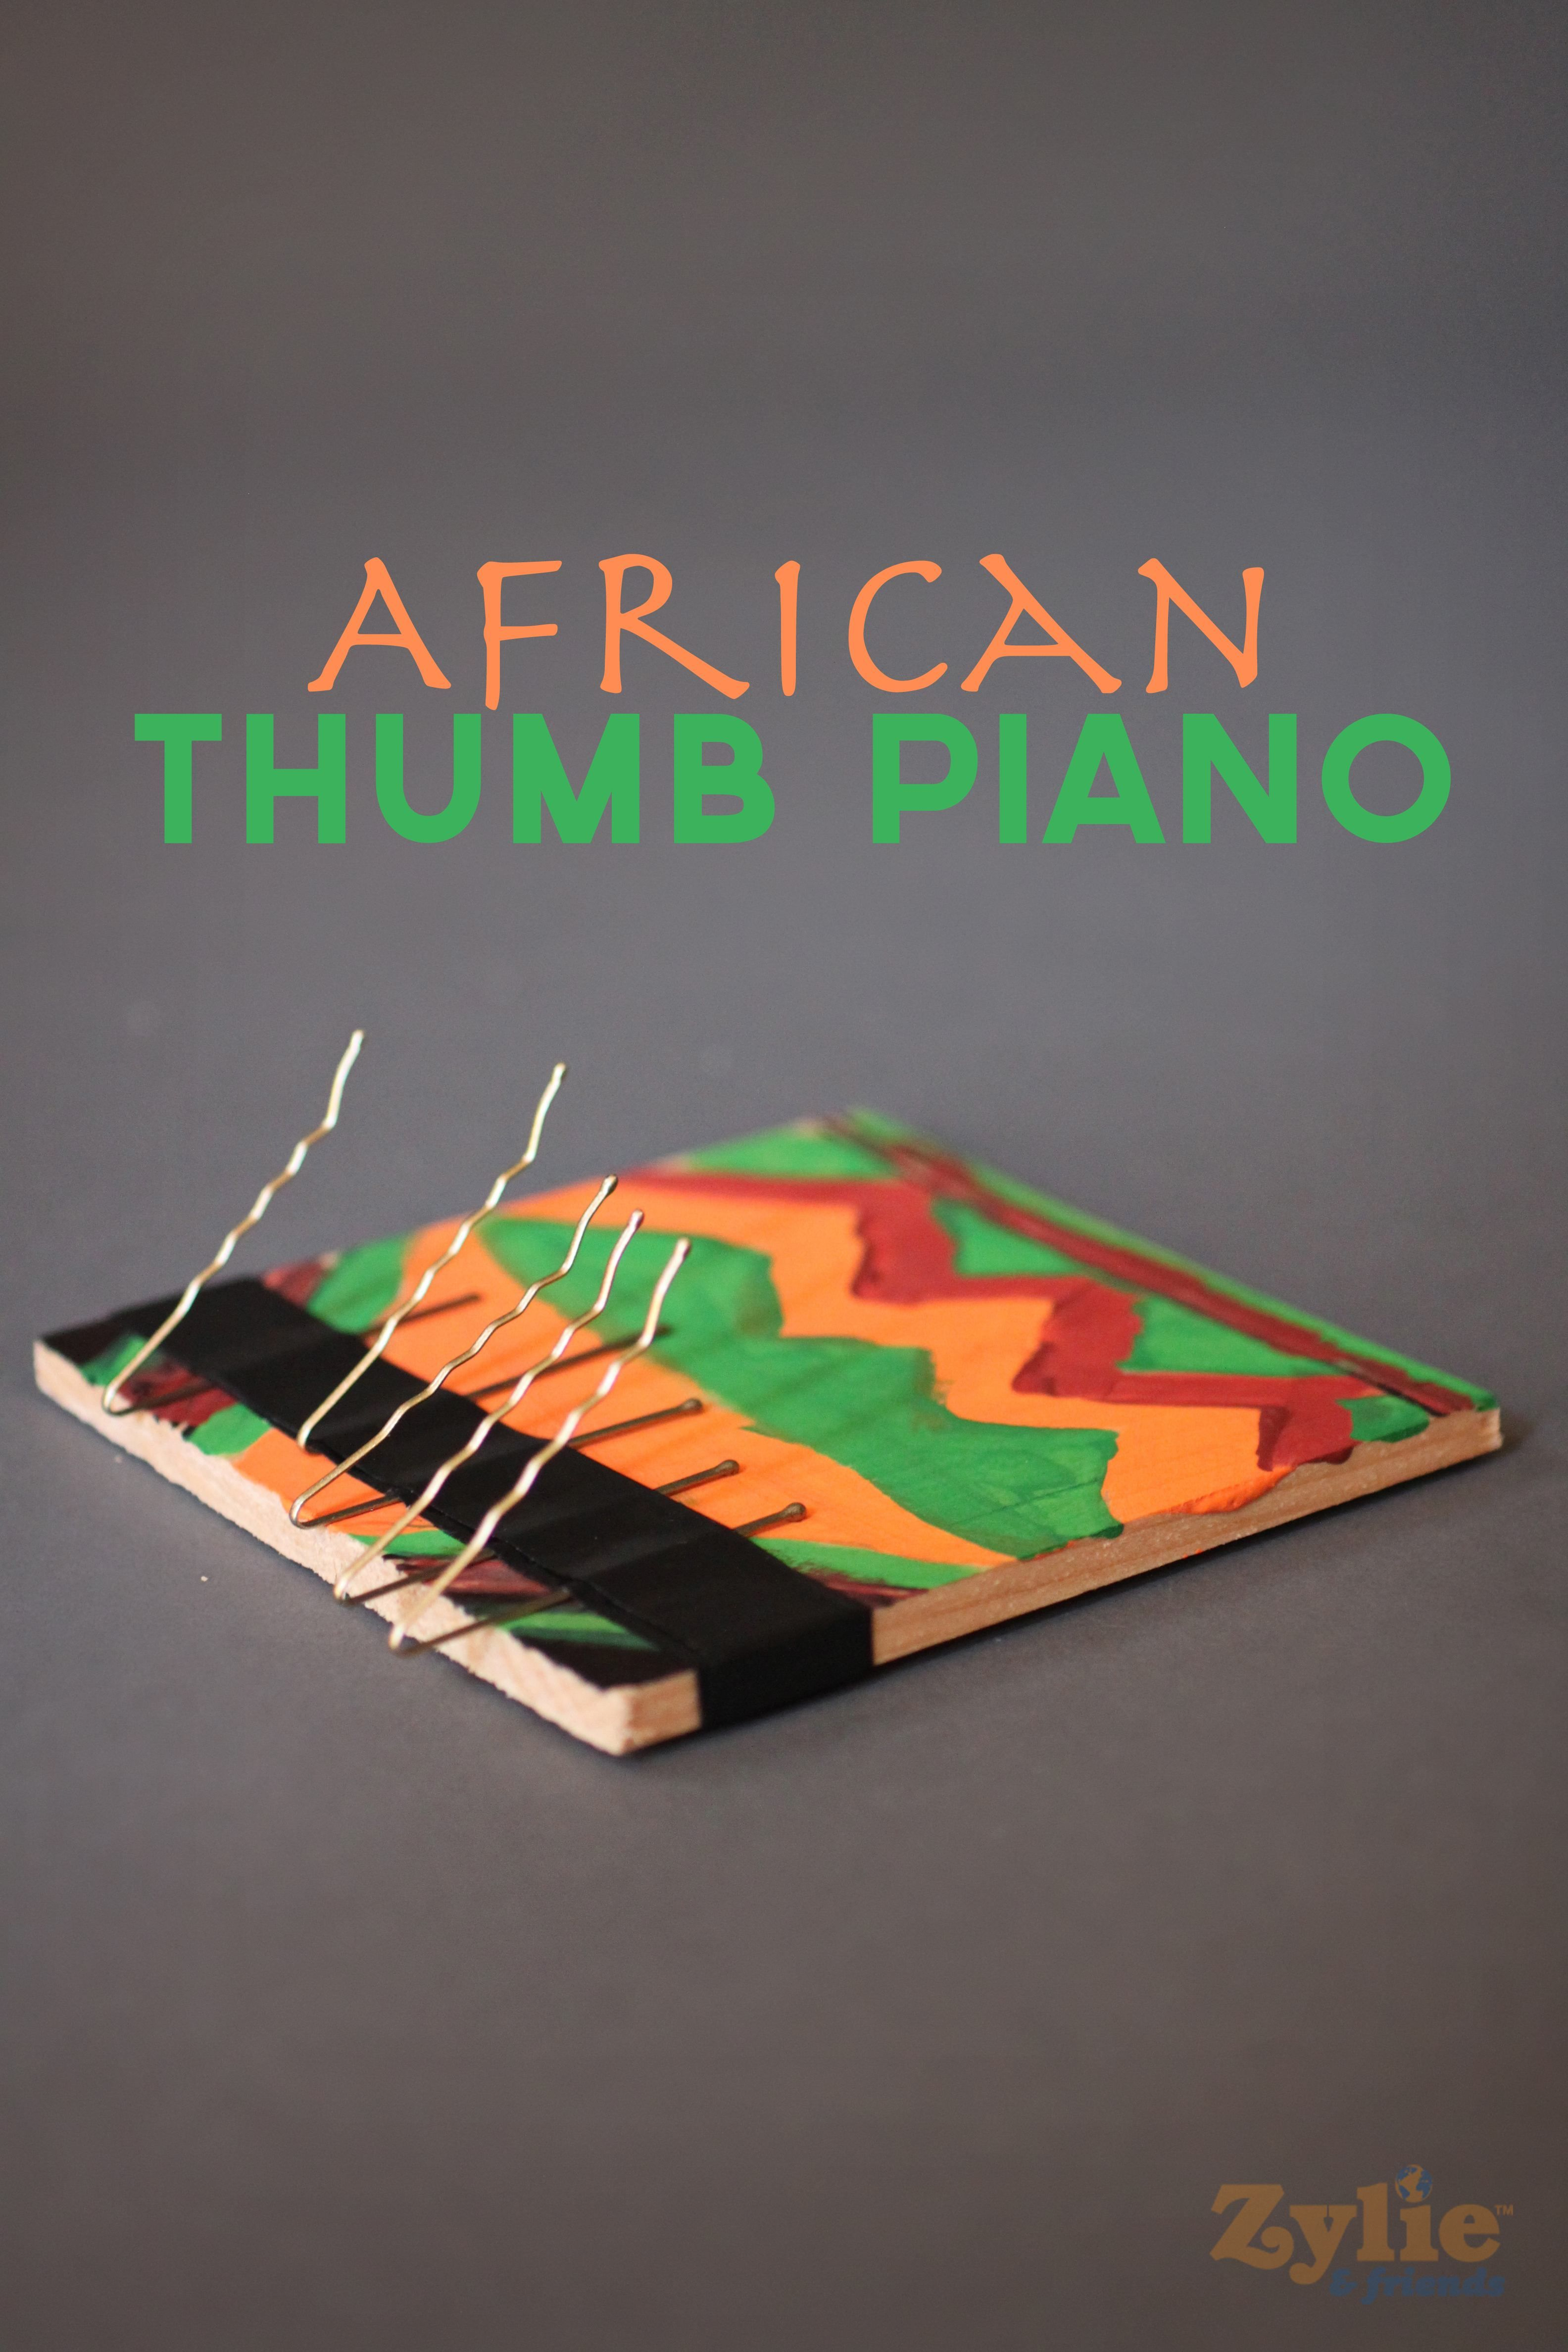 Pin By Jocie Farrell On Csc Stuff Pinterest Music Crafts And Aleatoric Blog Archive Circuitbending Tutorial Heres A Fun Way For Kids To Learn About From Different Cultures The Thumb